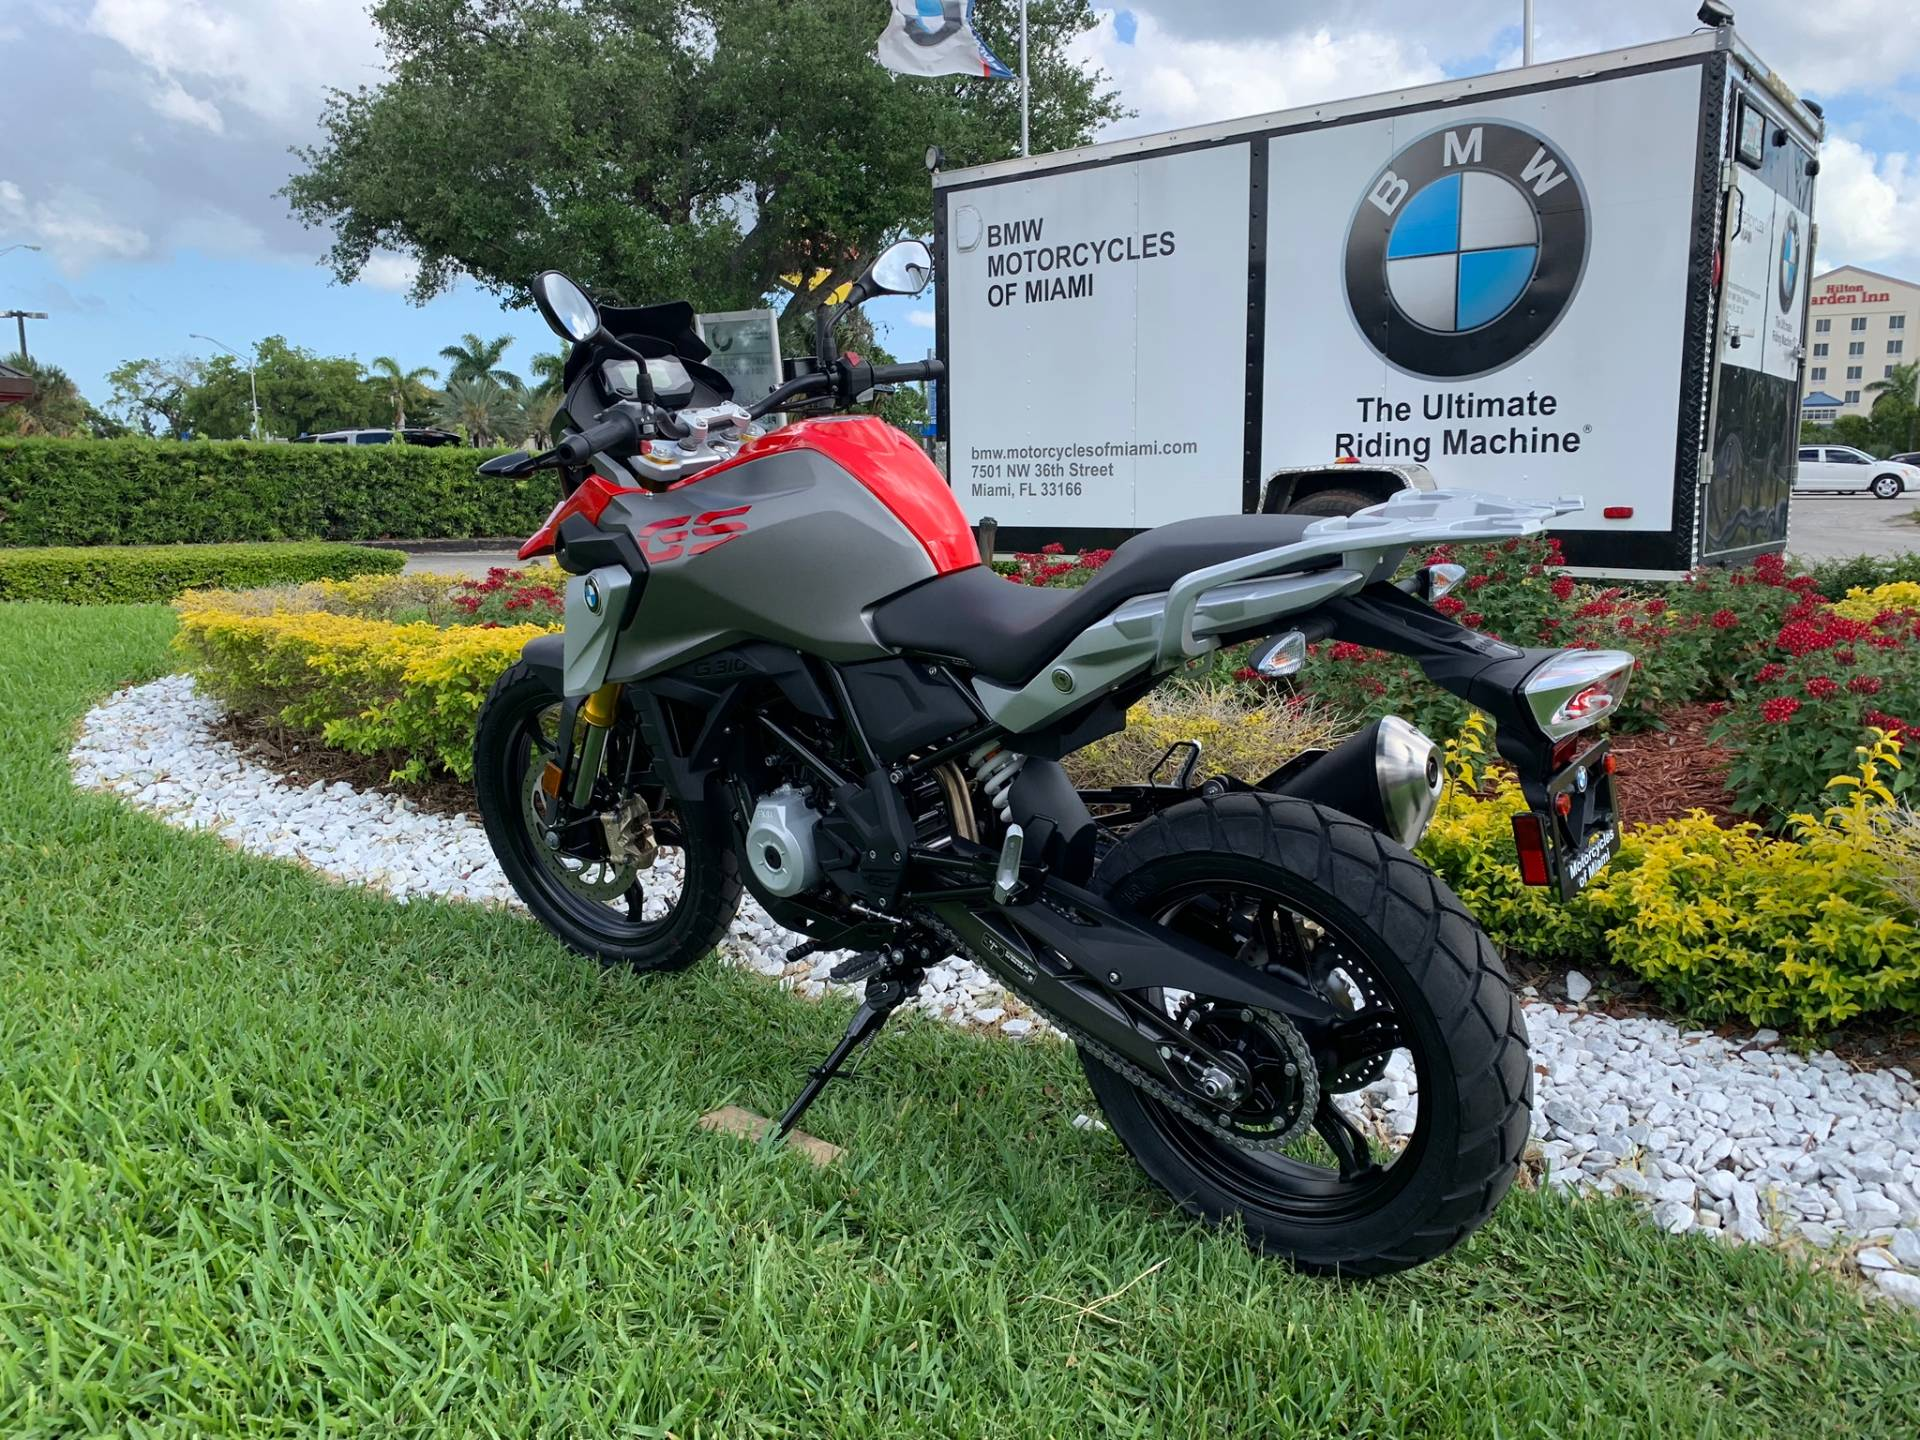 New 2019 BMW G 310 GS for sale, BMW G 310GS for sale, BMW Motorcycle GS, new BMW GS, Spirit of GS, BMW Motorcycles of Miami, Motorcycles of Miami, Motorcycles Miami, New Motorcycles, Used Motorcycles, pre-owned. #BMWMotorcyclesOfMiami #MotorcyclesOfMiami. - Photo 8